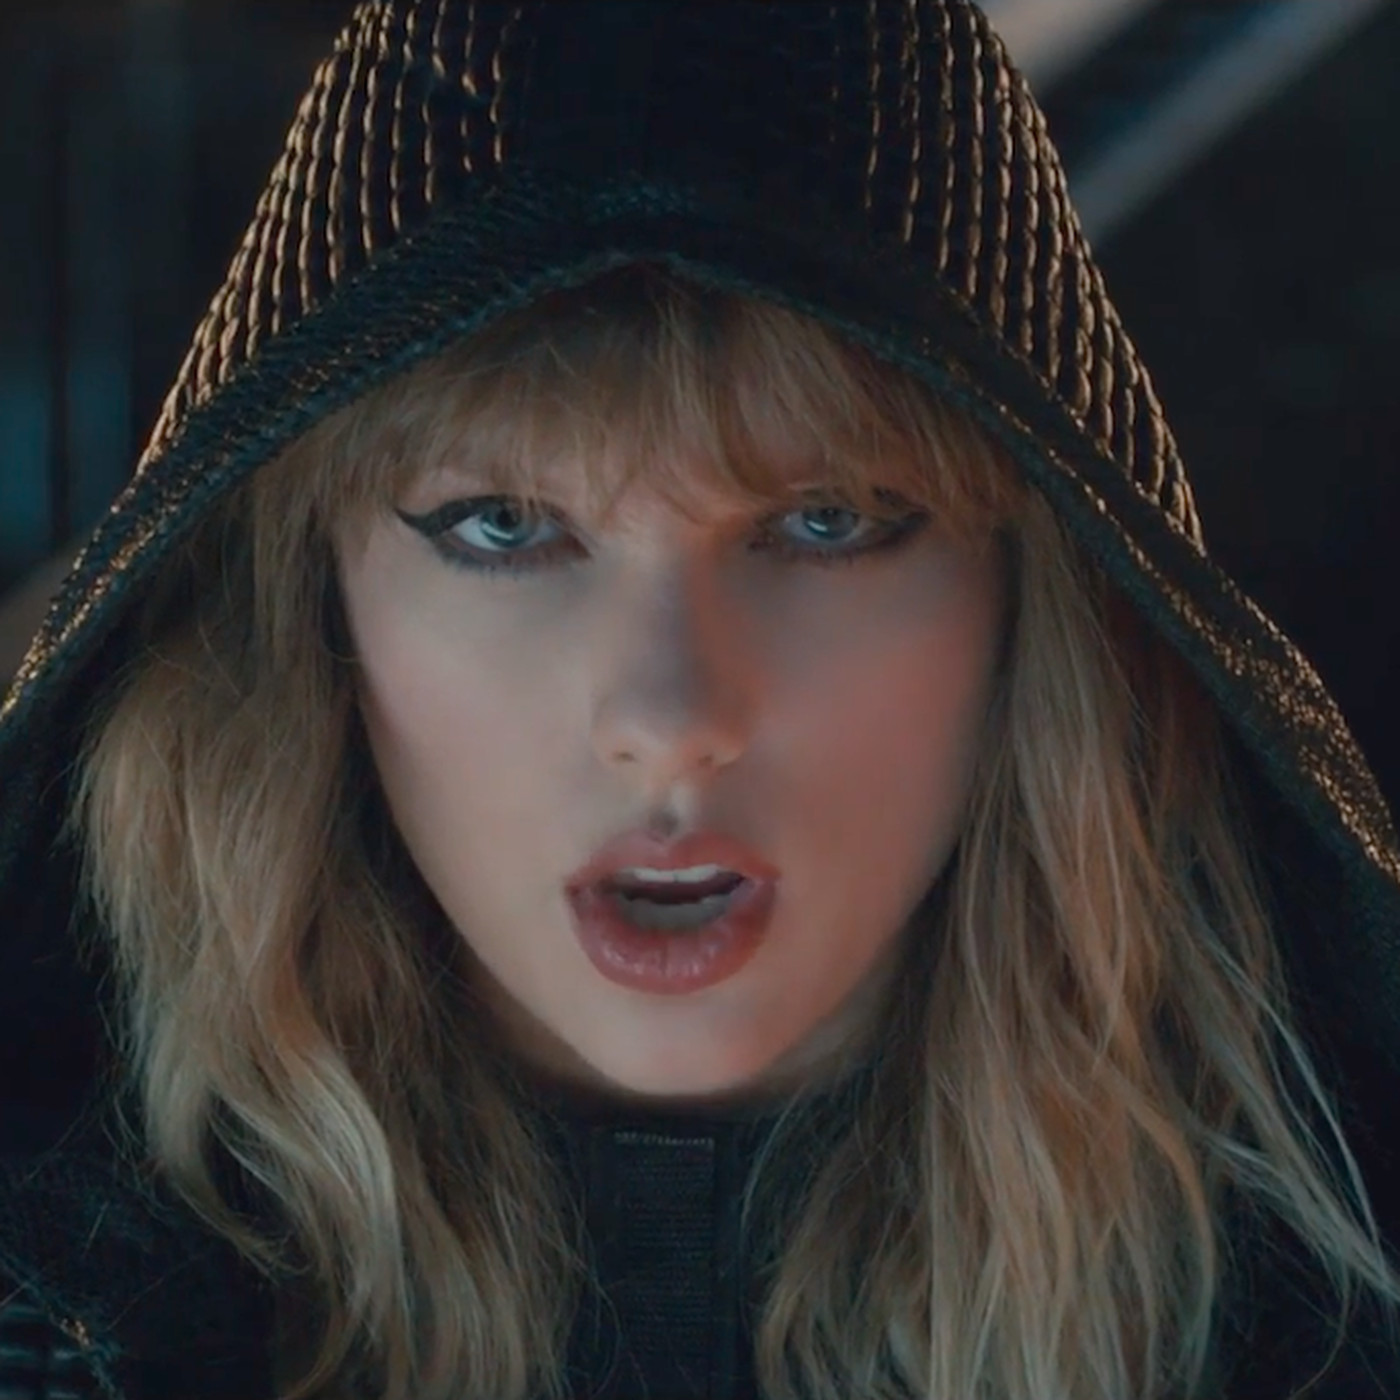 On Reputation Taylor Swift Emerges As The Modern Celebrity We Deserve The Verge